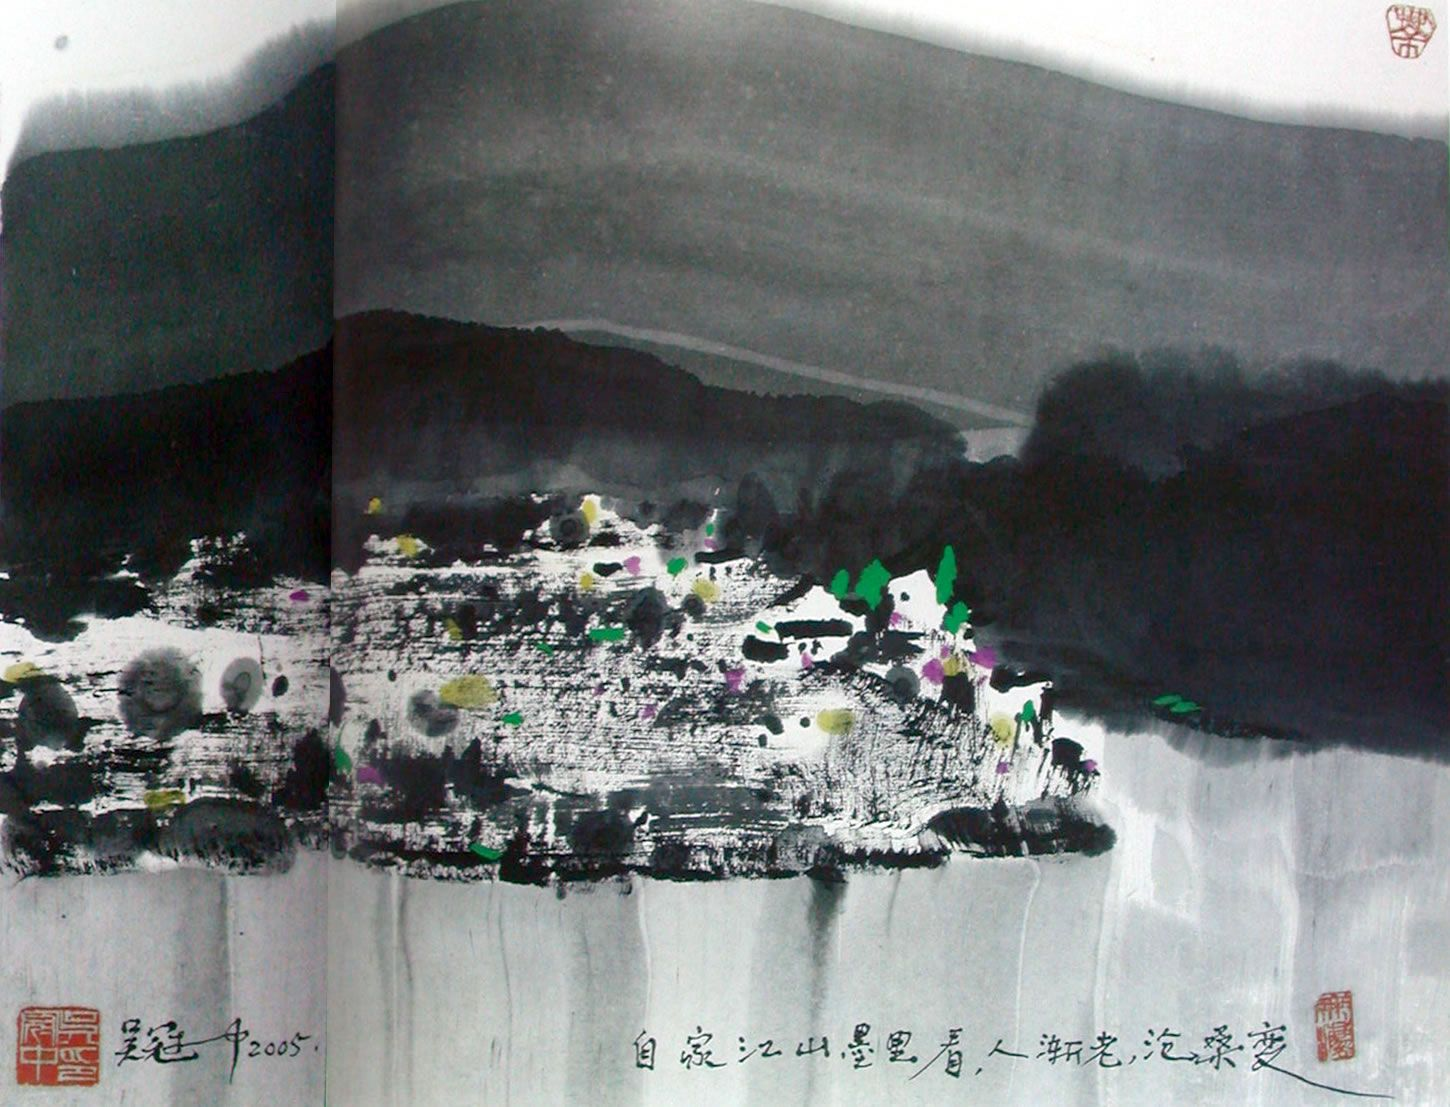 Wu Guanzhong -- love the tiny pops of emerald, citron, and fuchsia against the black and gray